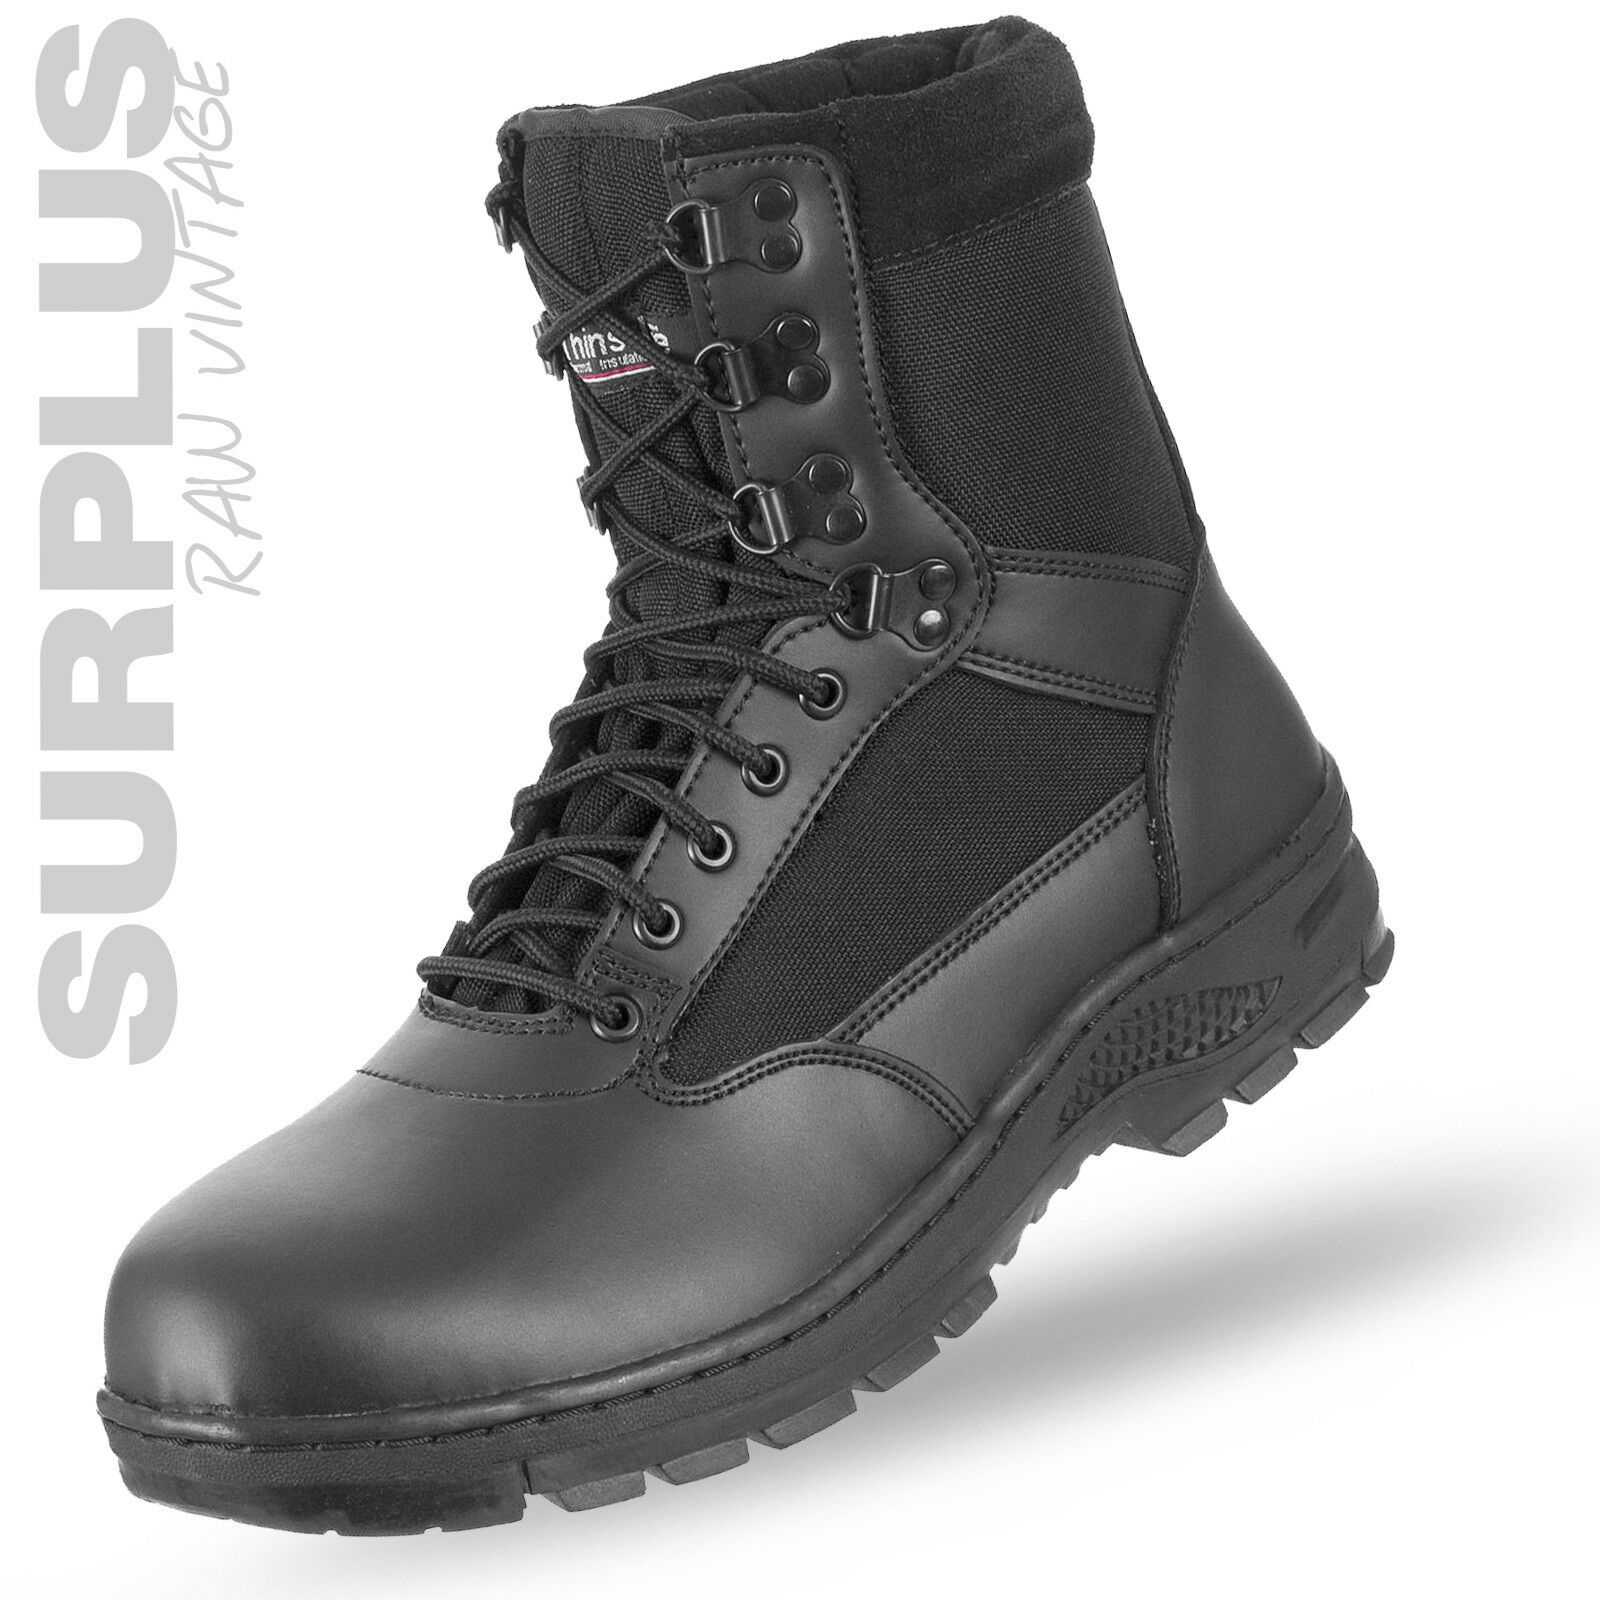 Surplus Security Boots 9LOCH Boots Work Boots Worker Gotcha Paintball 39-47